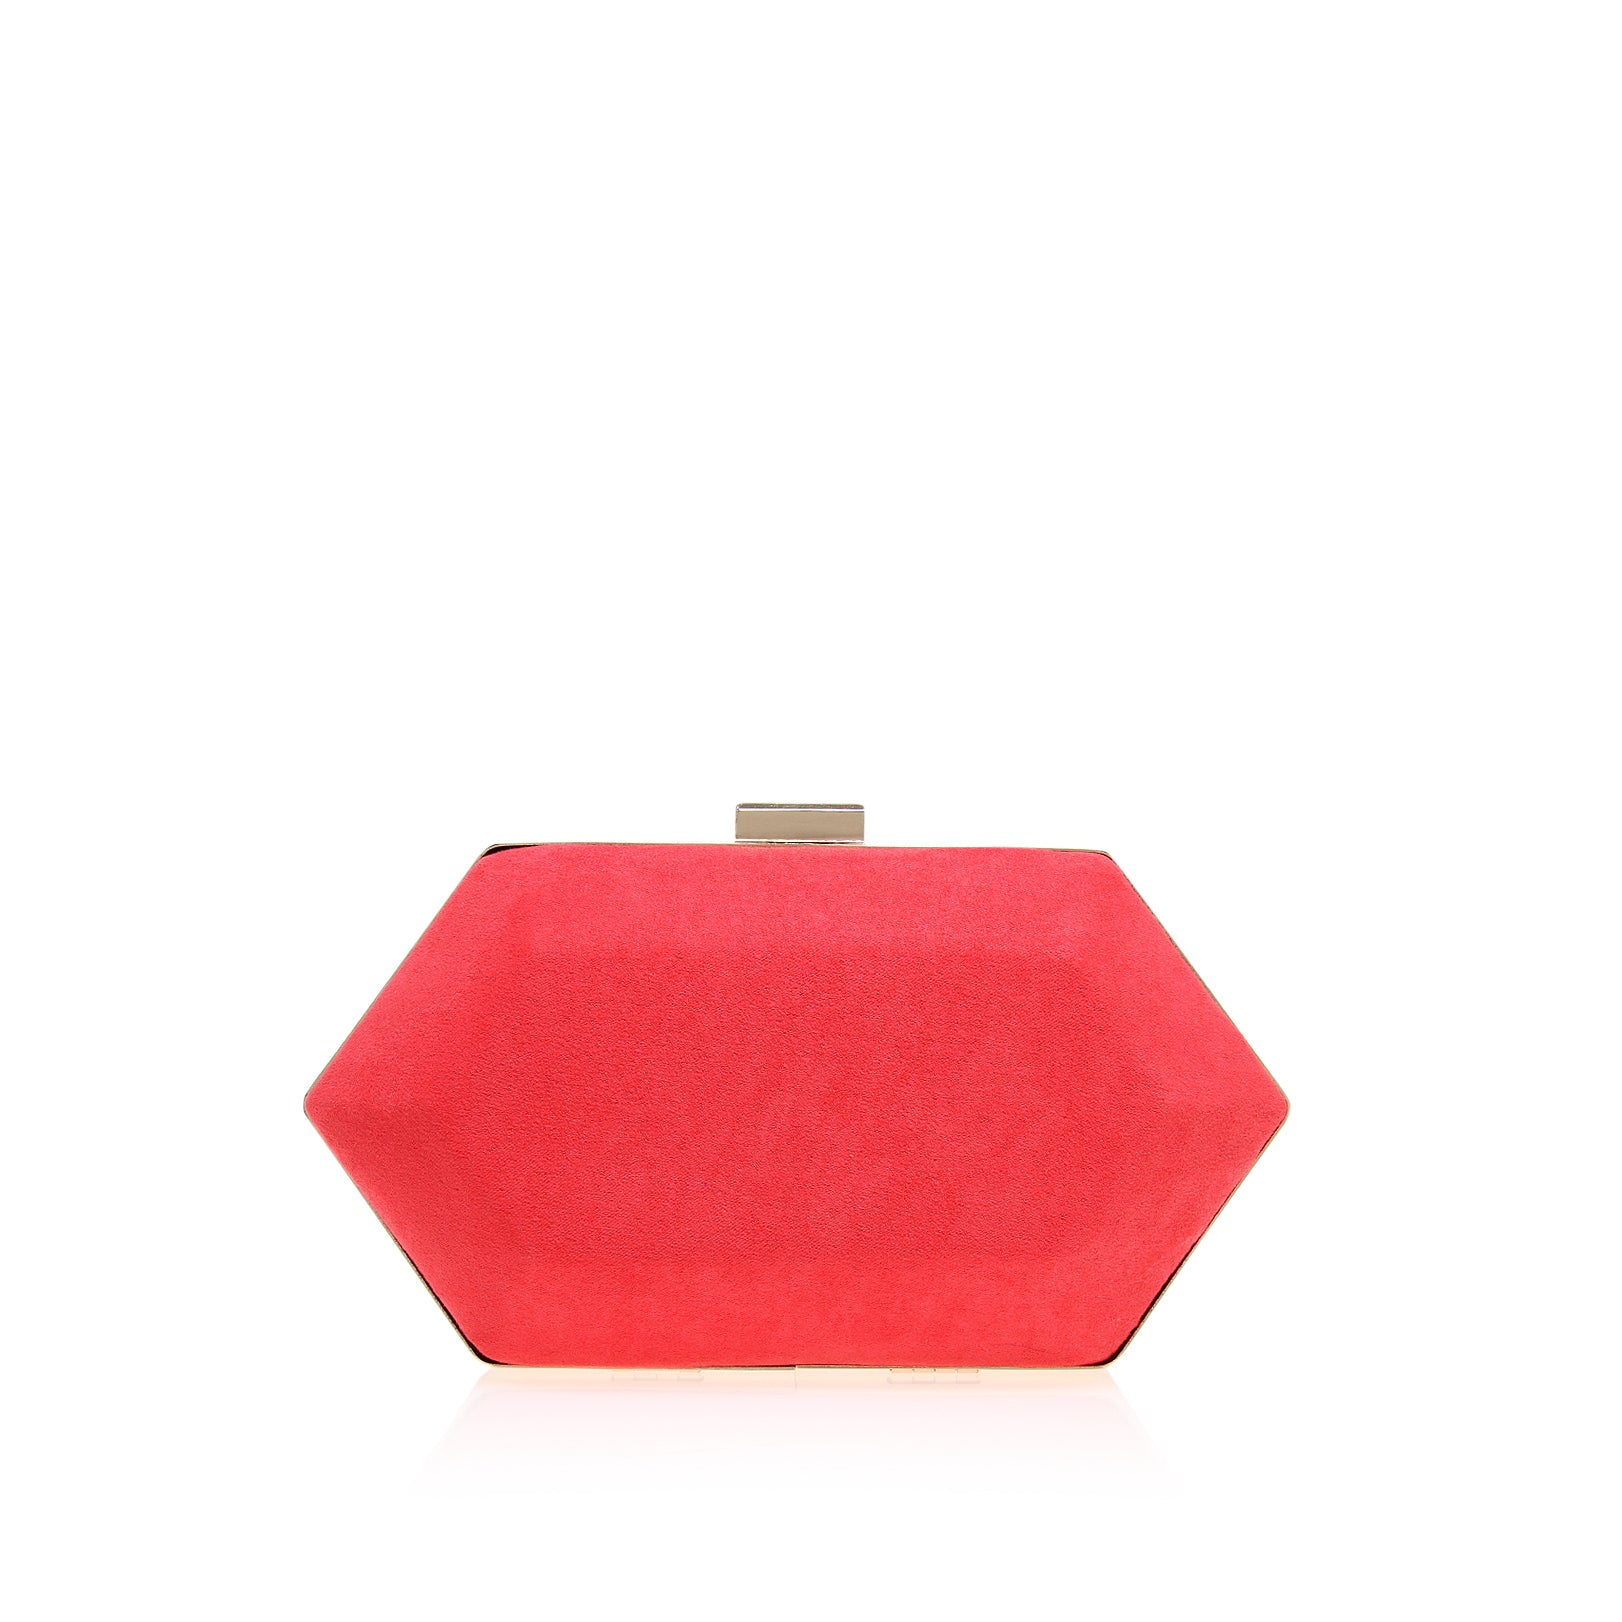 Kurt Geiger Miss KG Pink Jewel Womens Clutch Bag